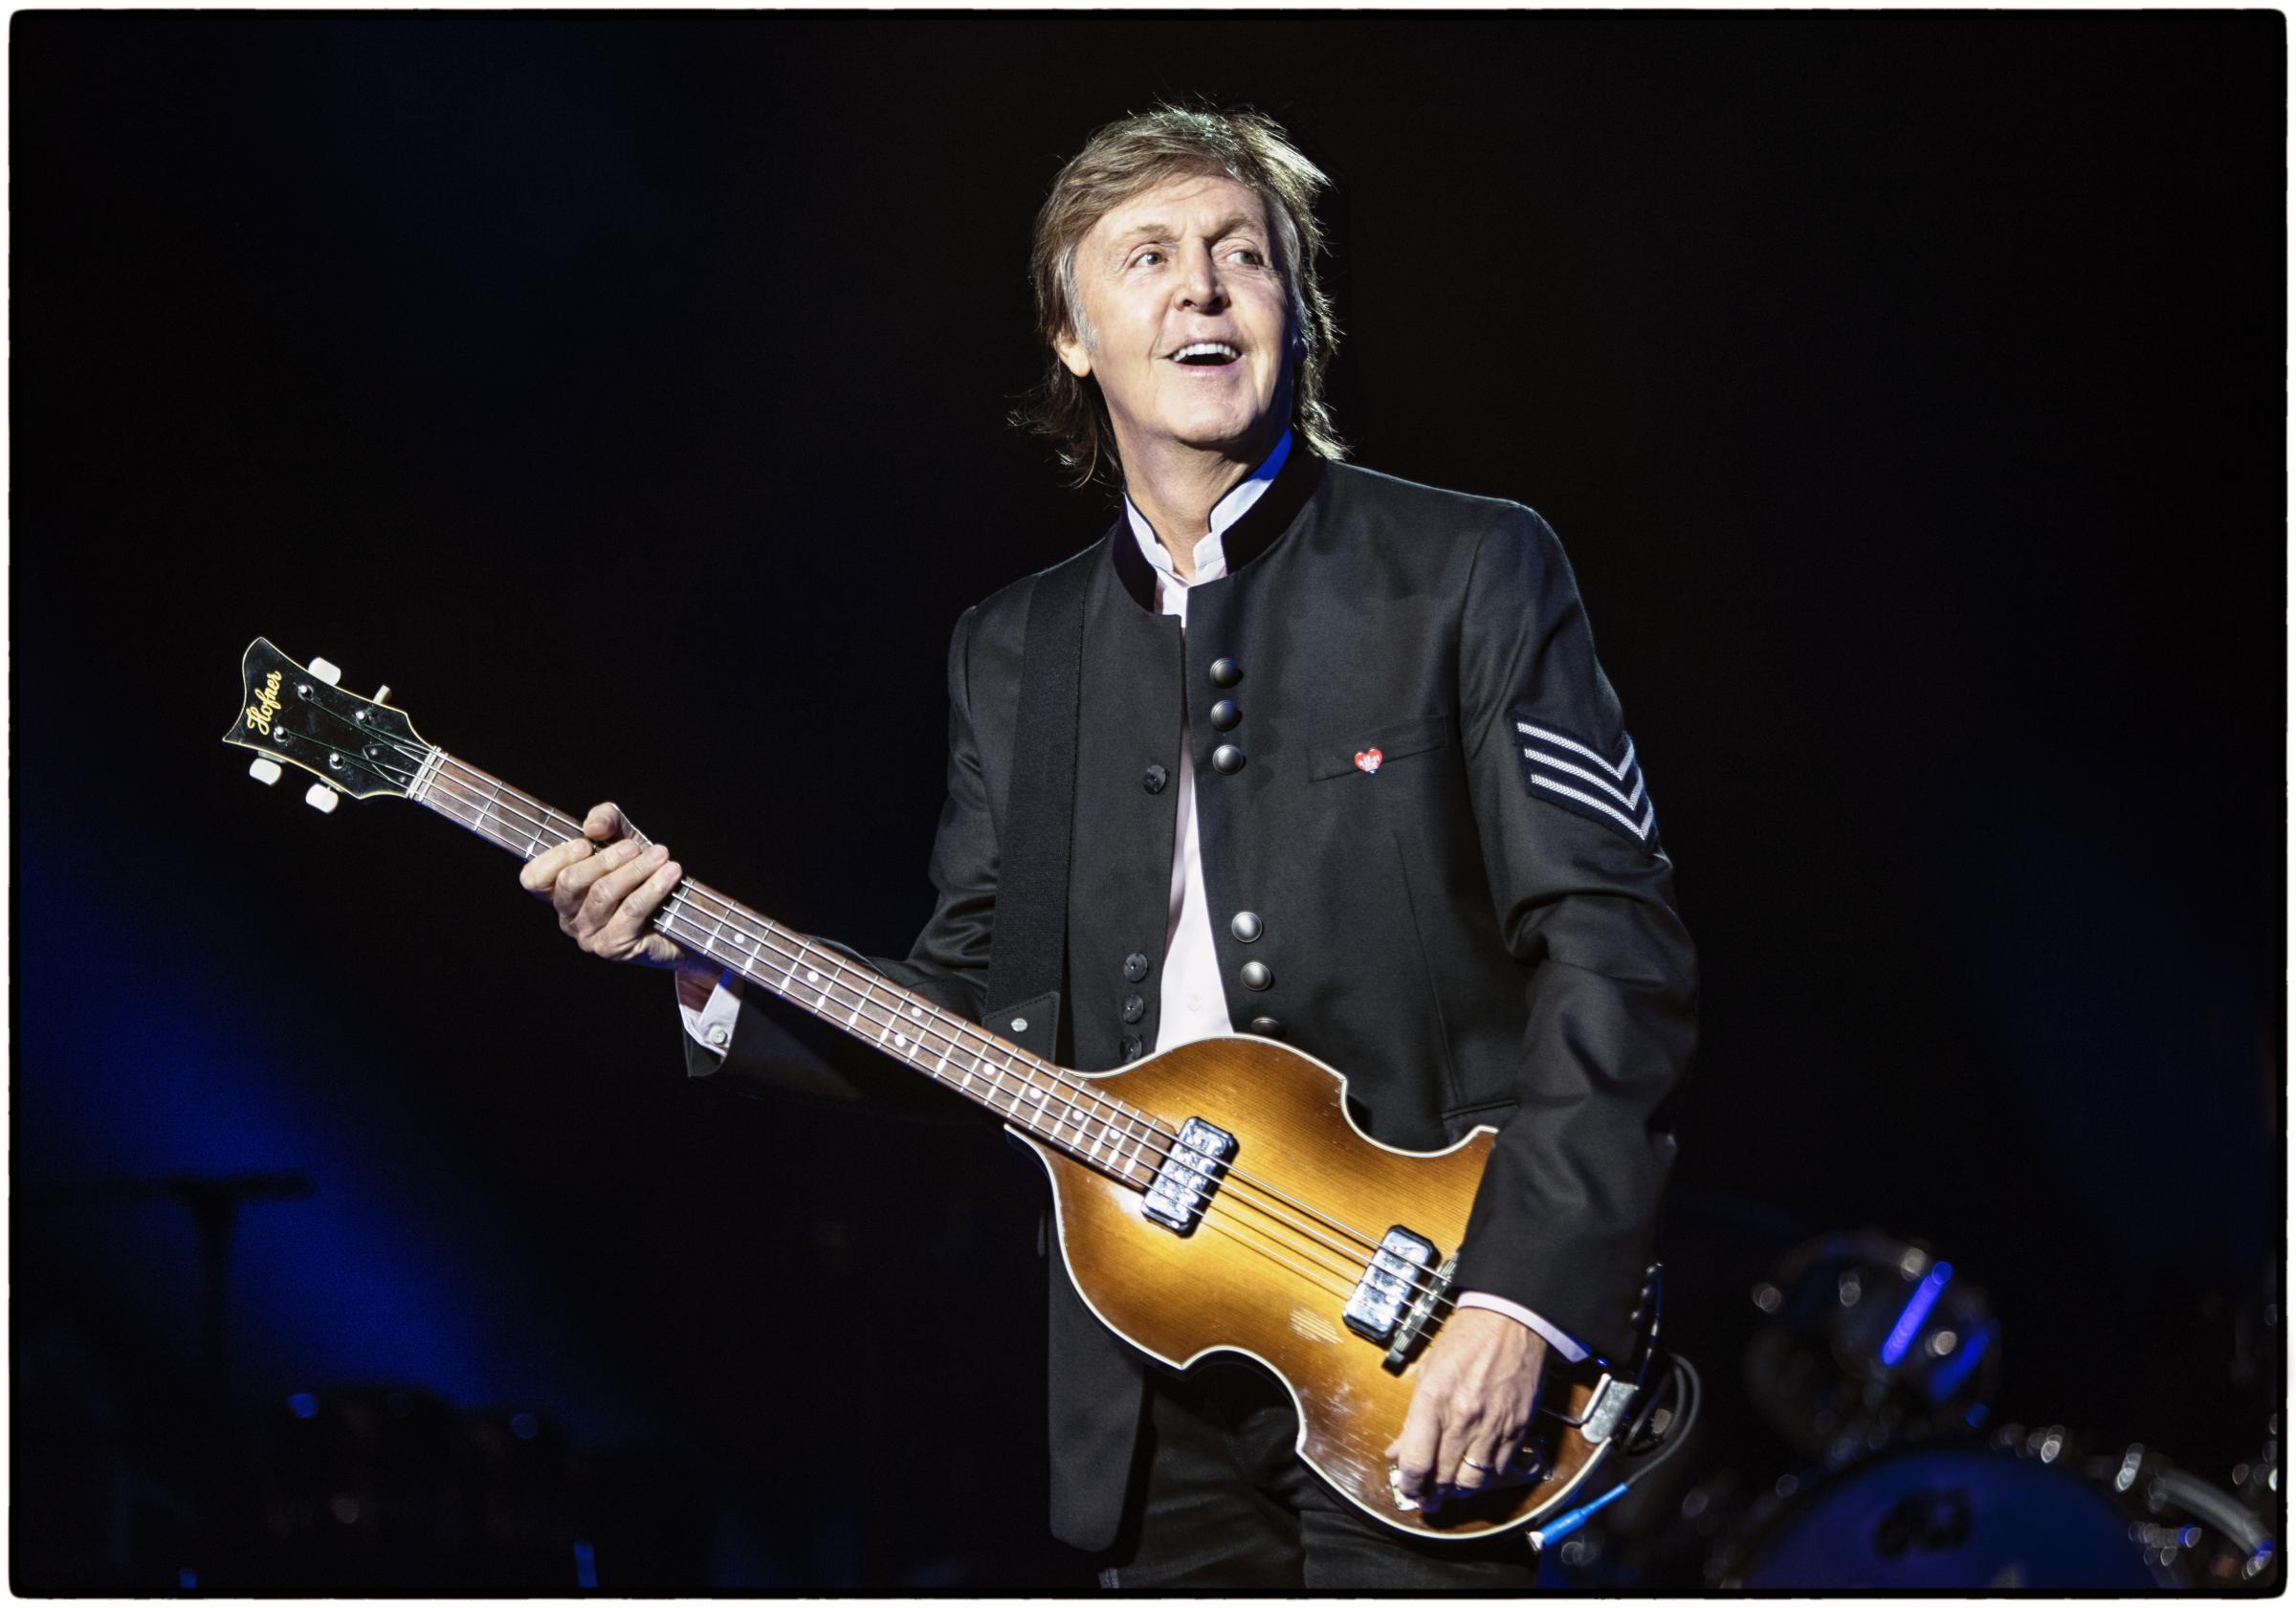 Paul McCartney will return home for a special performance in December